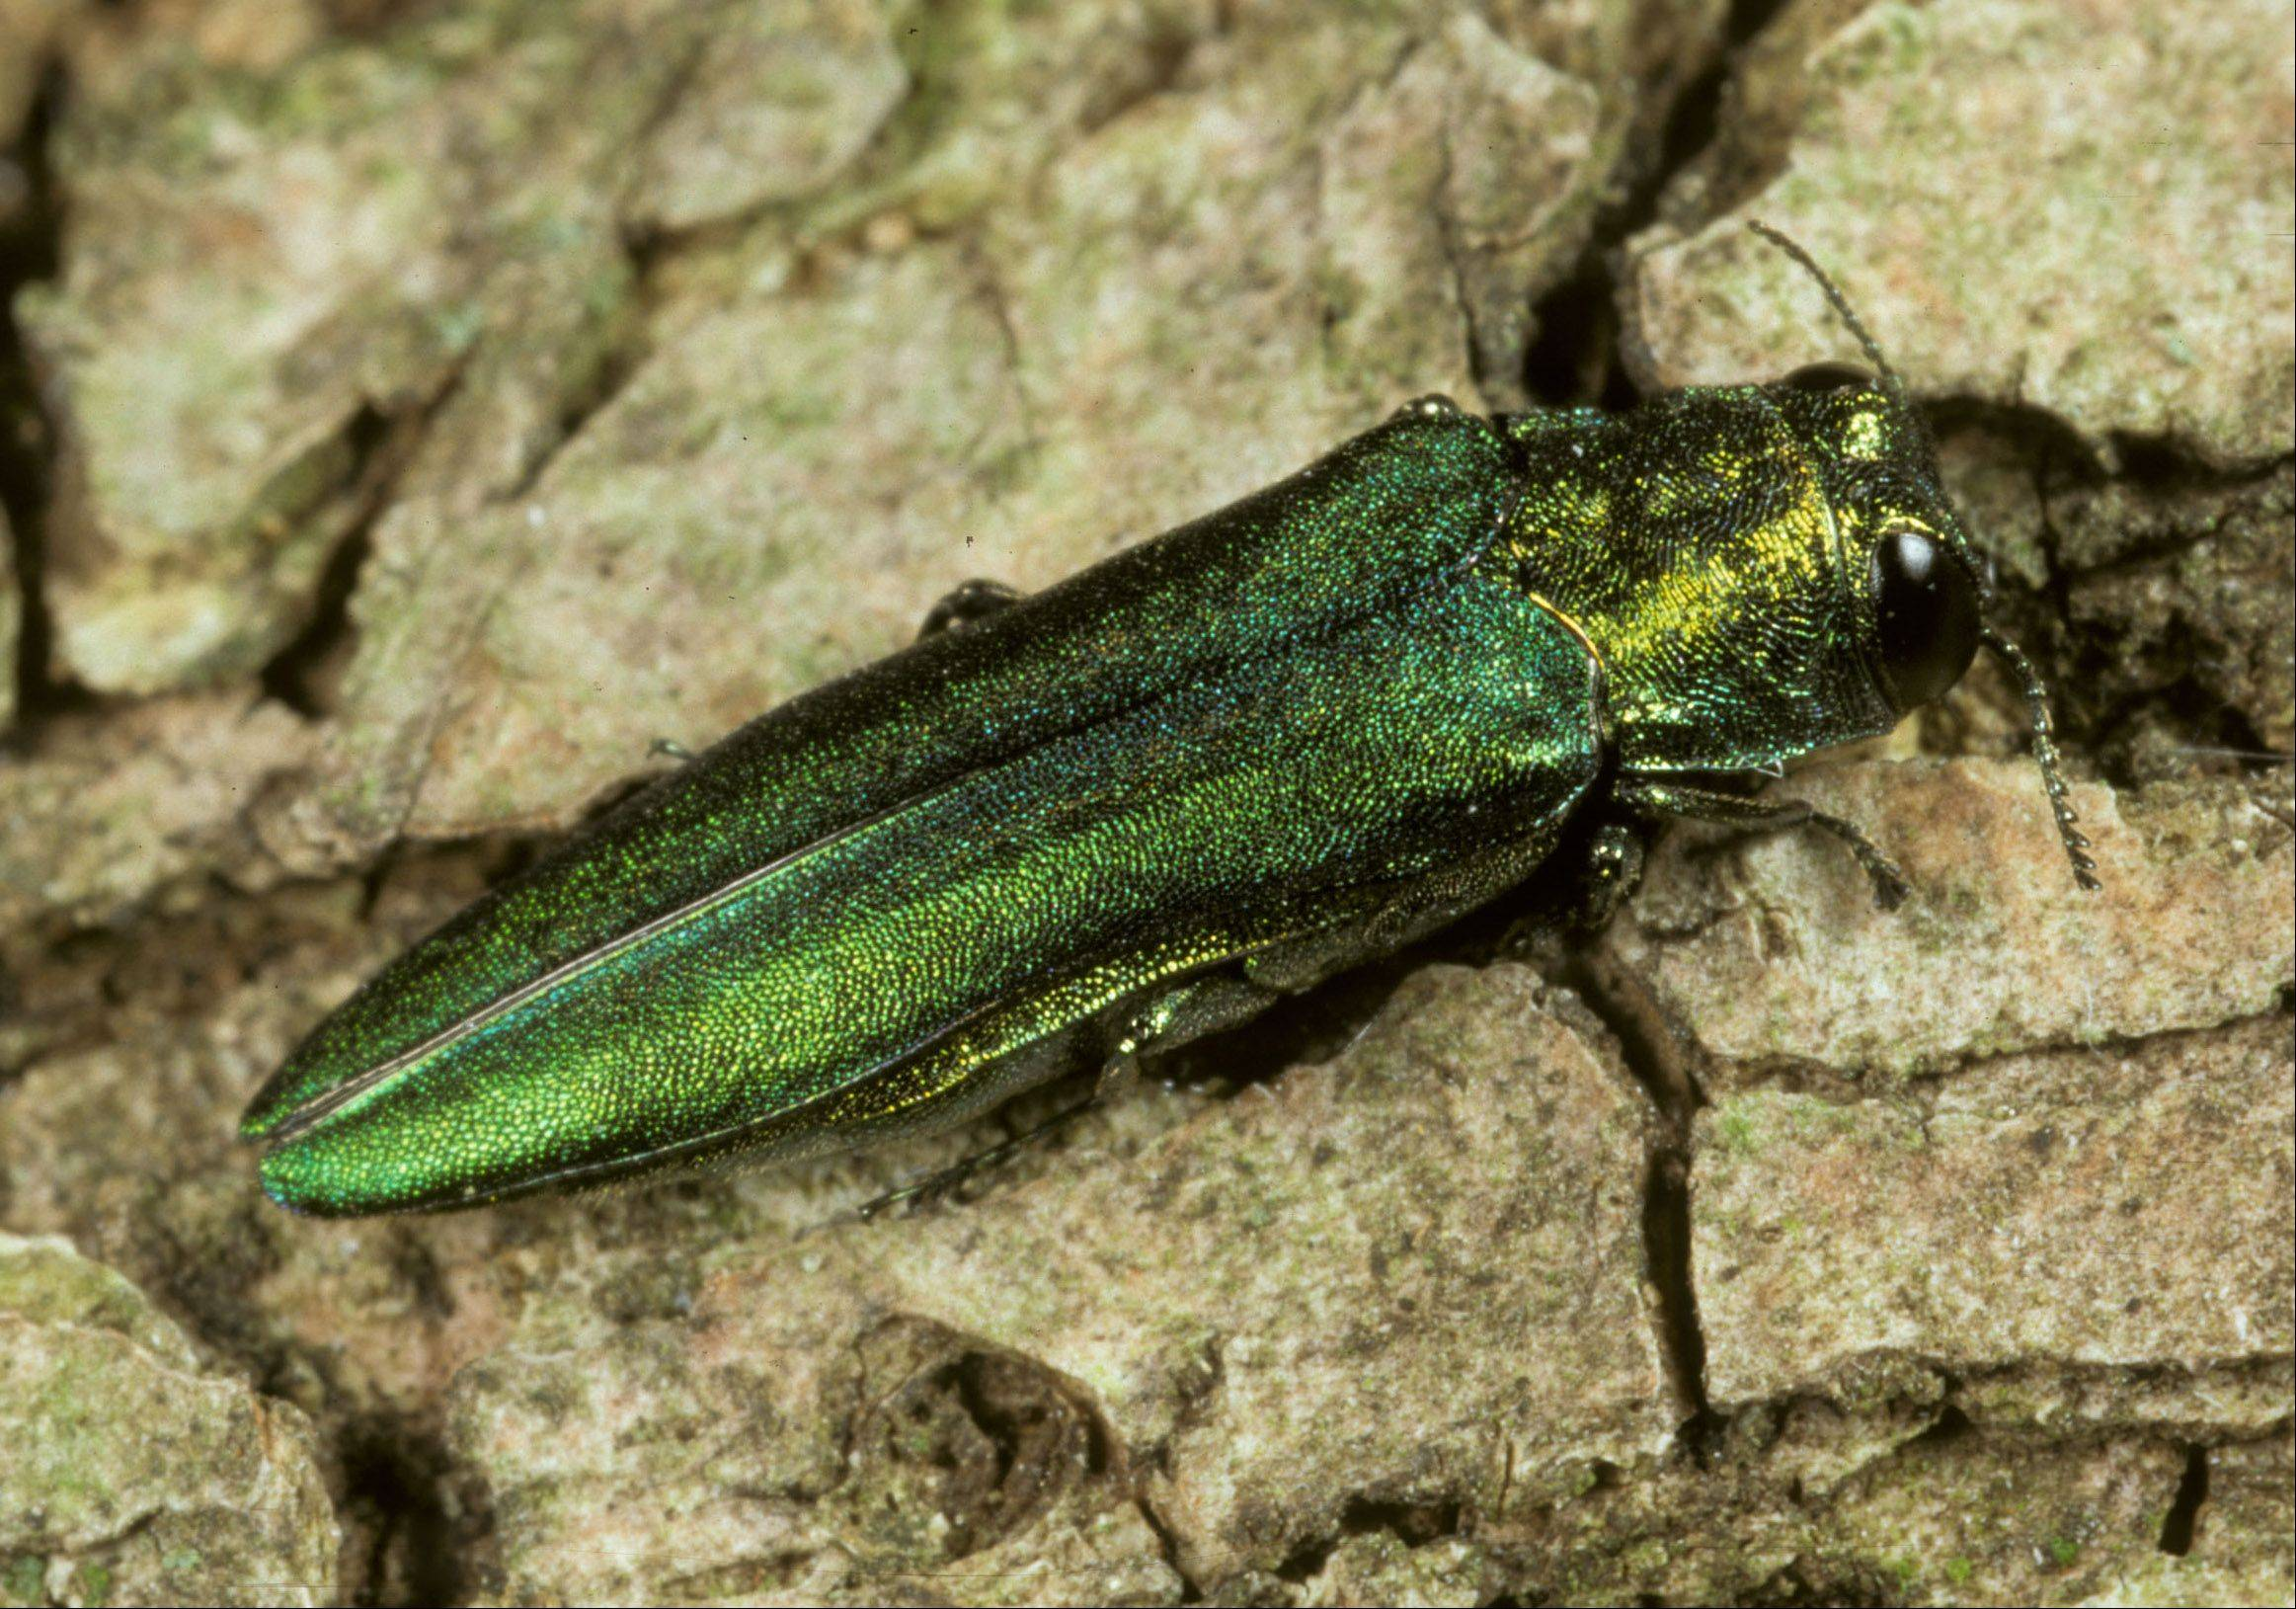 This is an emerald ash borer.